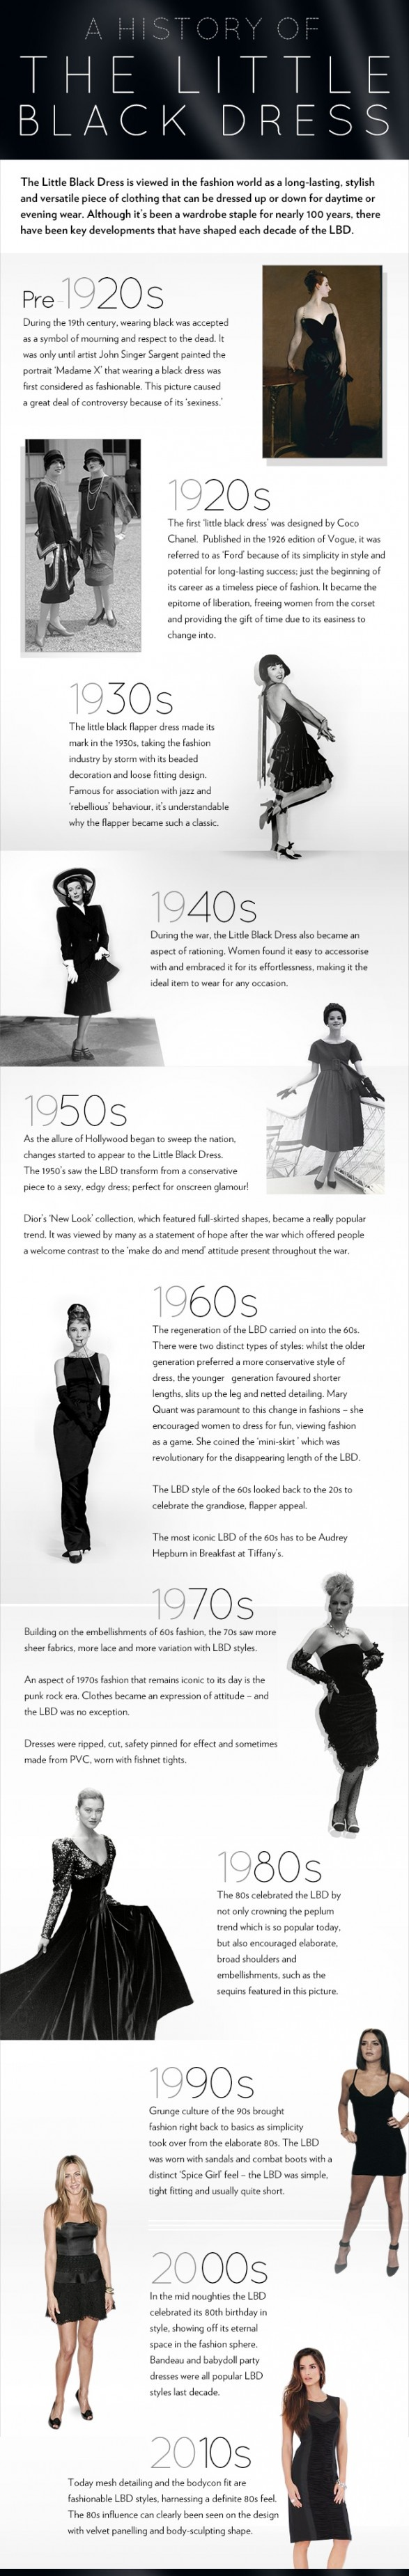 History of the Little Black Dress